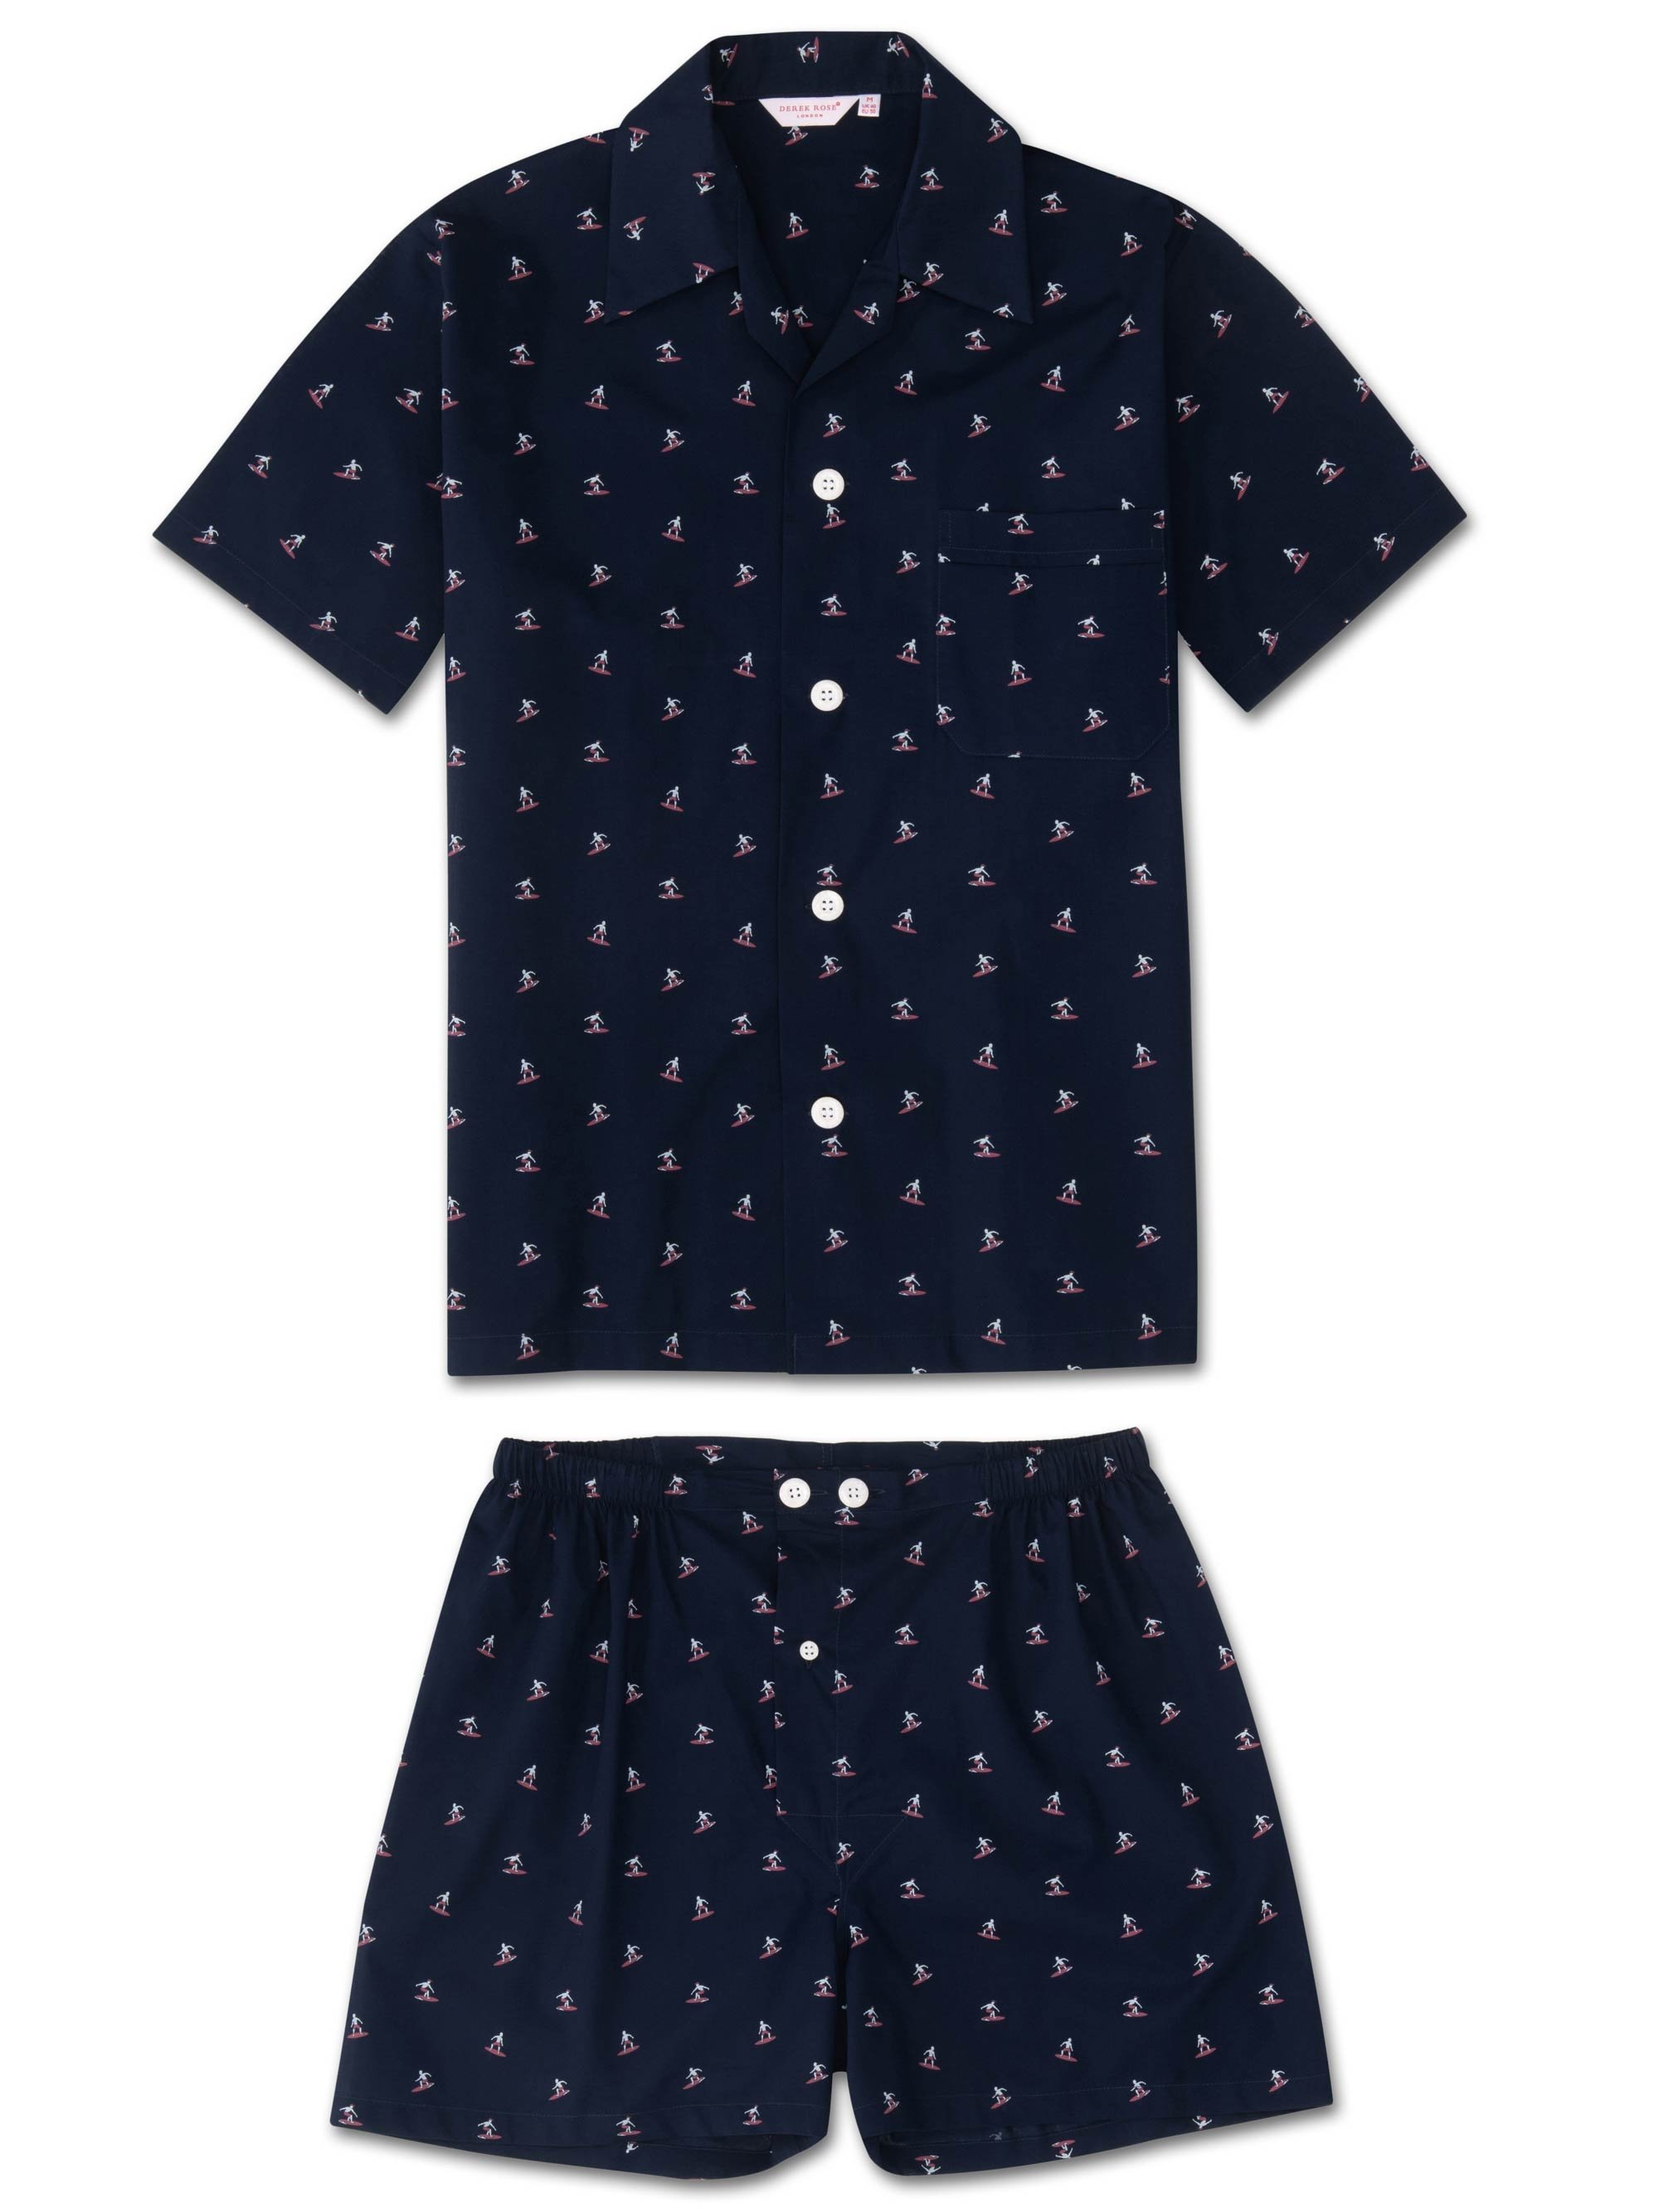 Men's Short Pyjamas Nelson 69 Cotton Batiste Navy